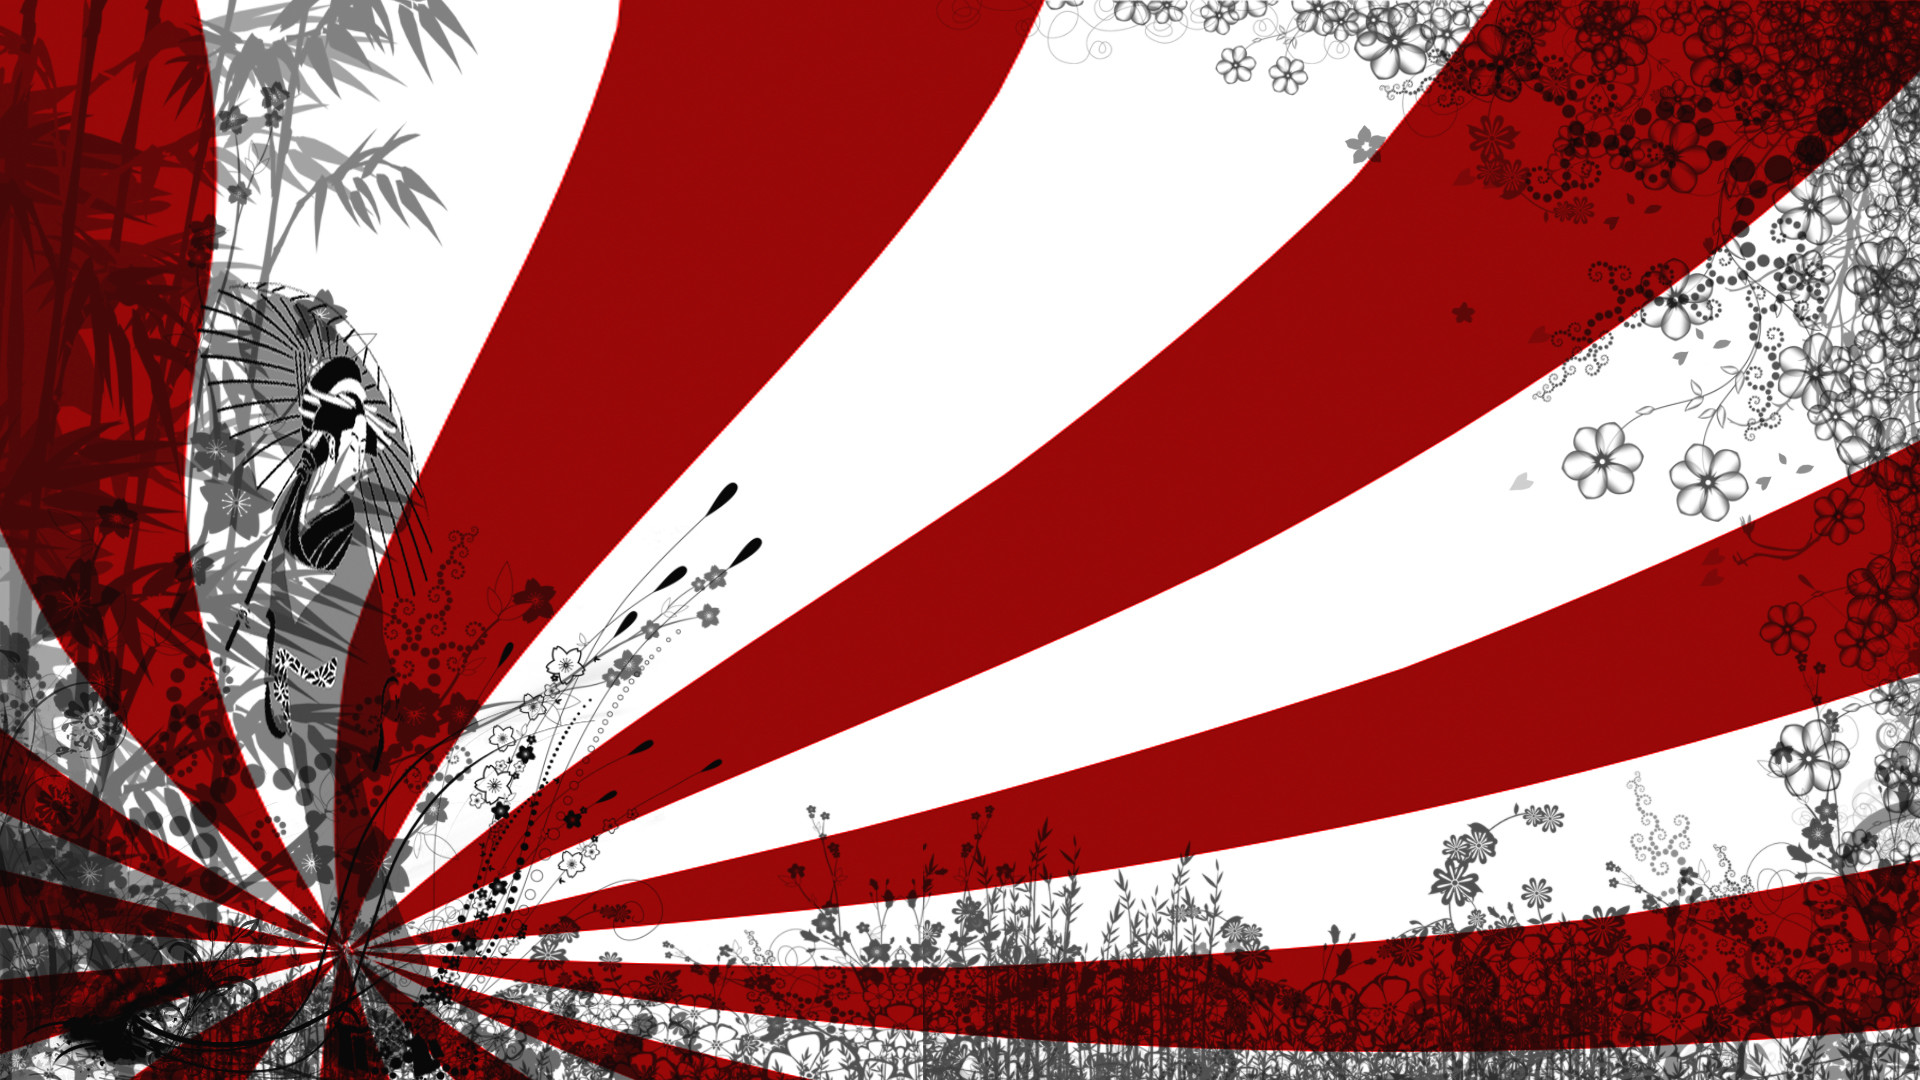 1920x1080 Japanese Flag Wallpaper Free Download